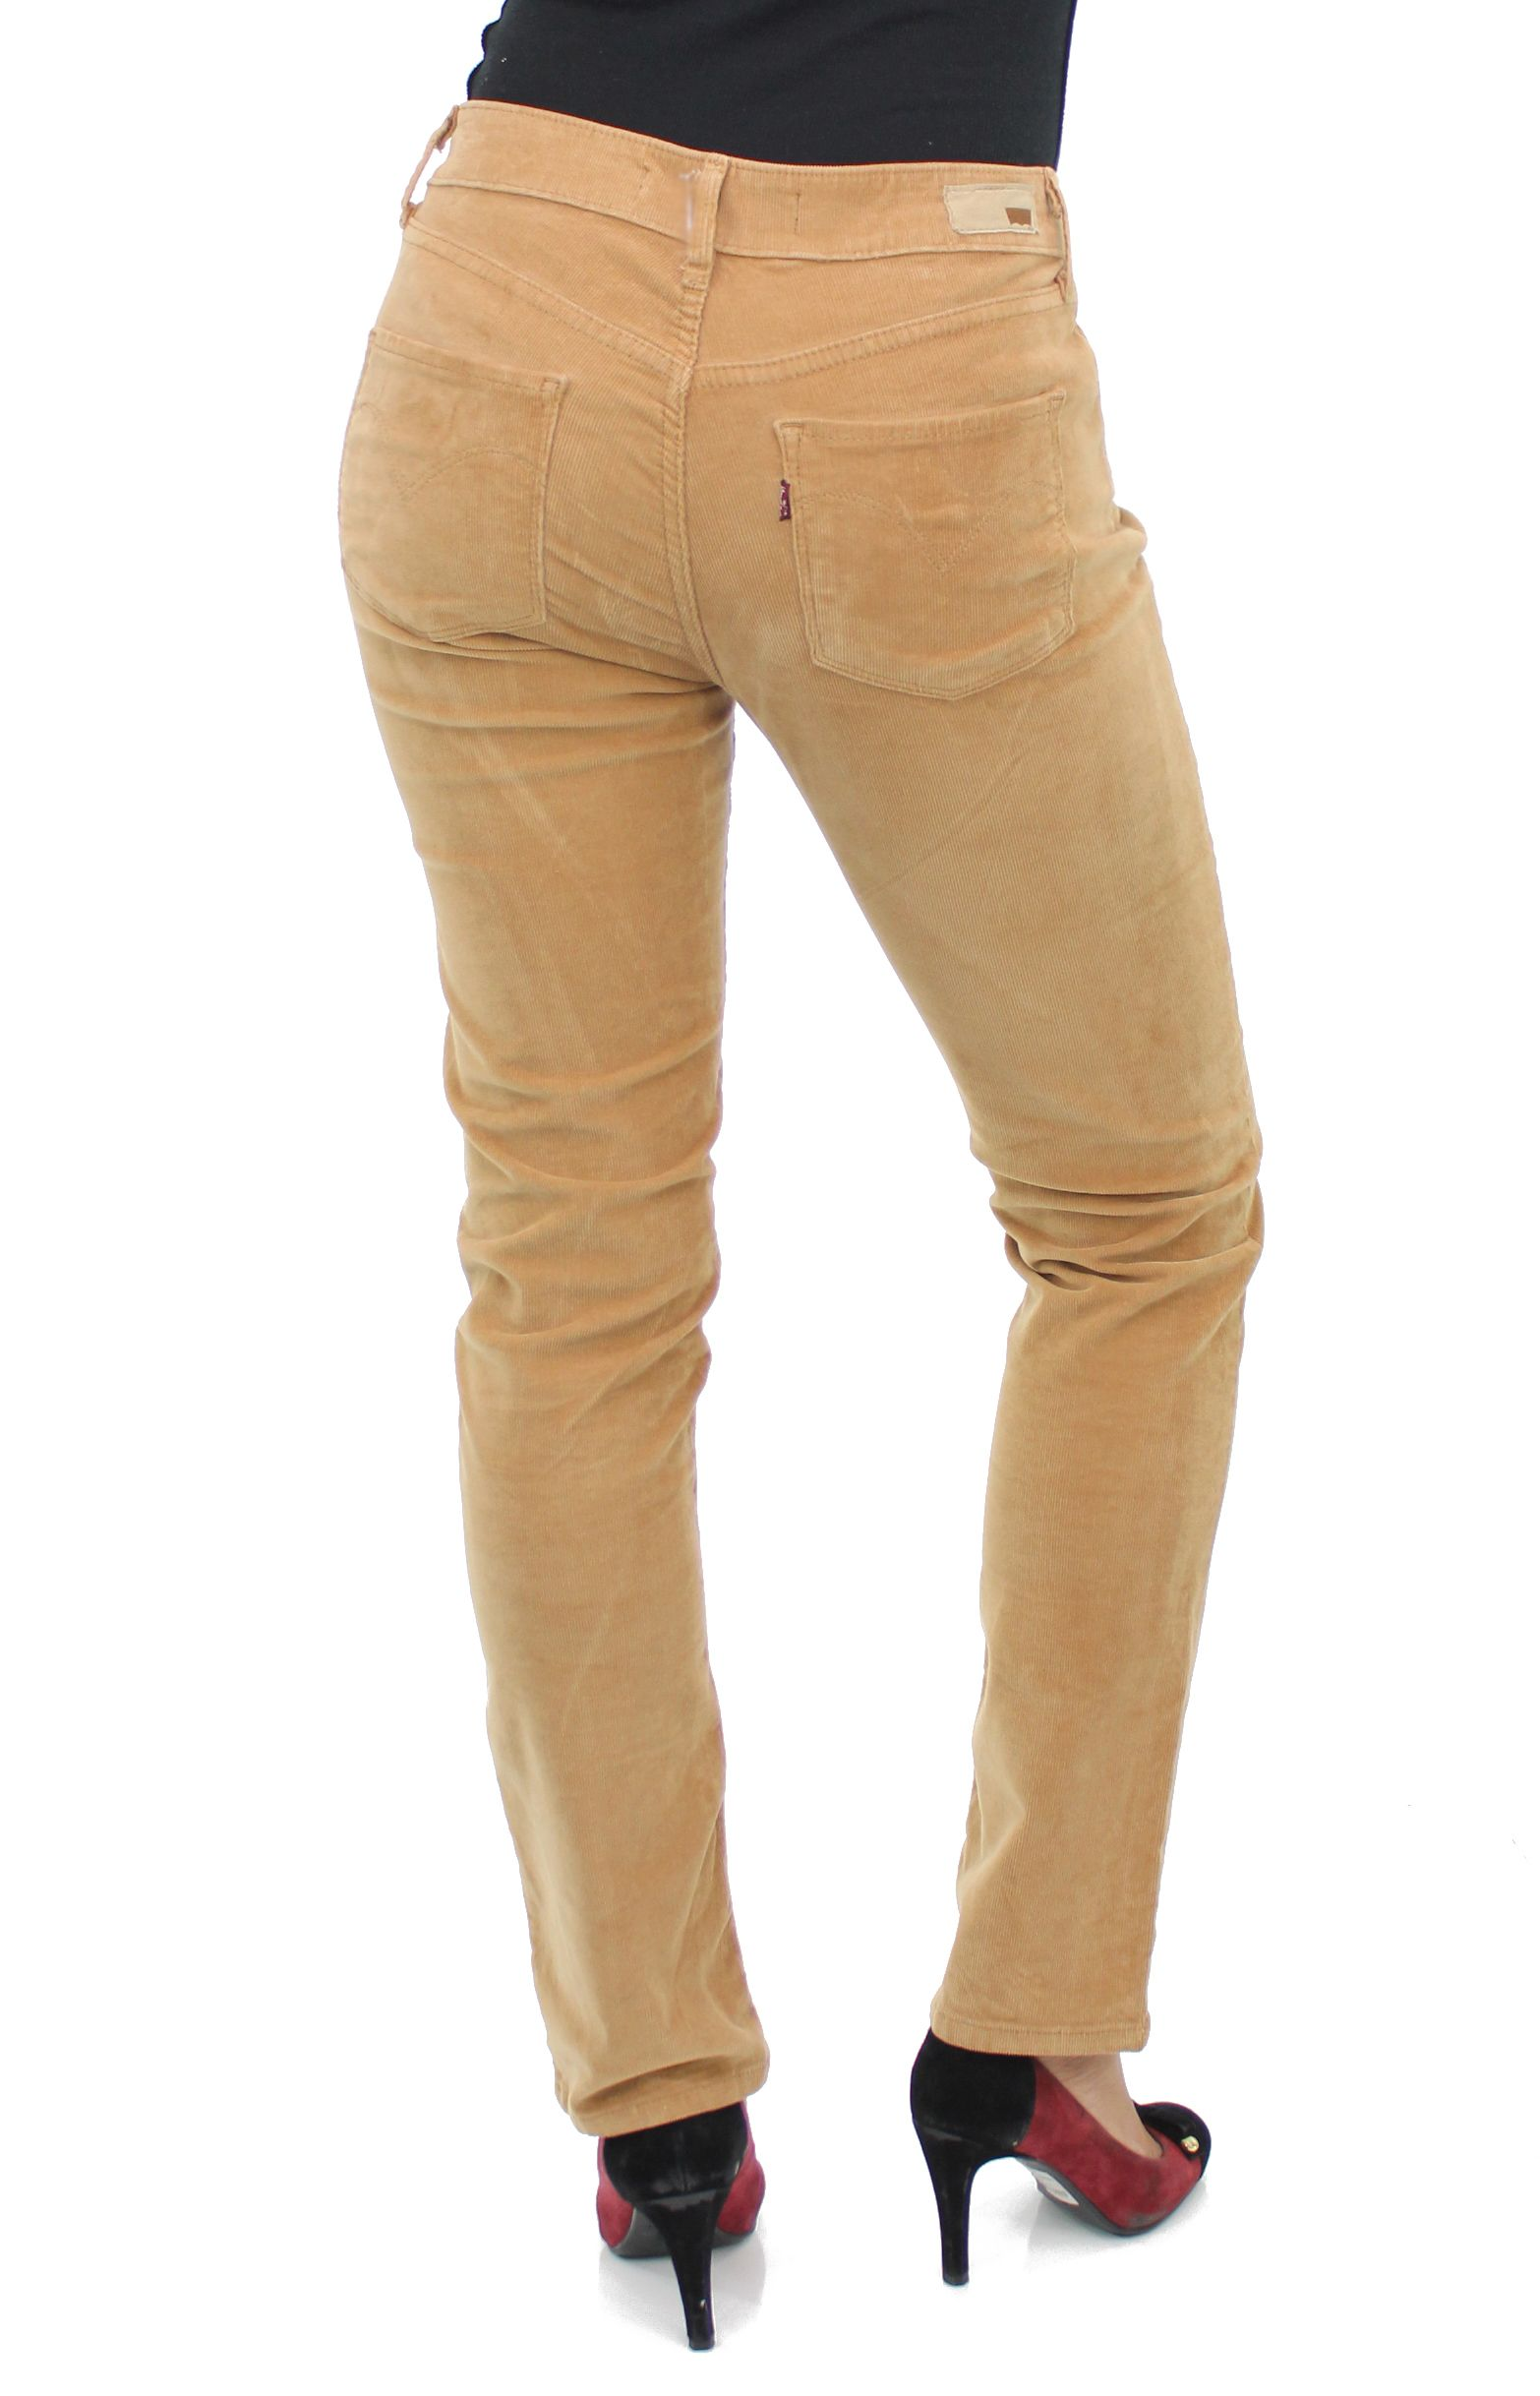 Popular Over The Next Couple Of Decades, The Pants Went Mainstream In 1934, Levis Took Advantage Of The Rise In Western Movies And Launched Its First Jeans Aimed At Affluent Women Who Wanted  Fell 3 To 4